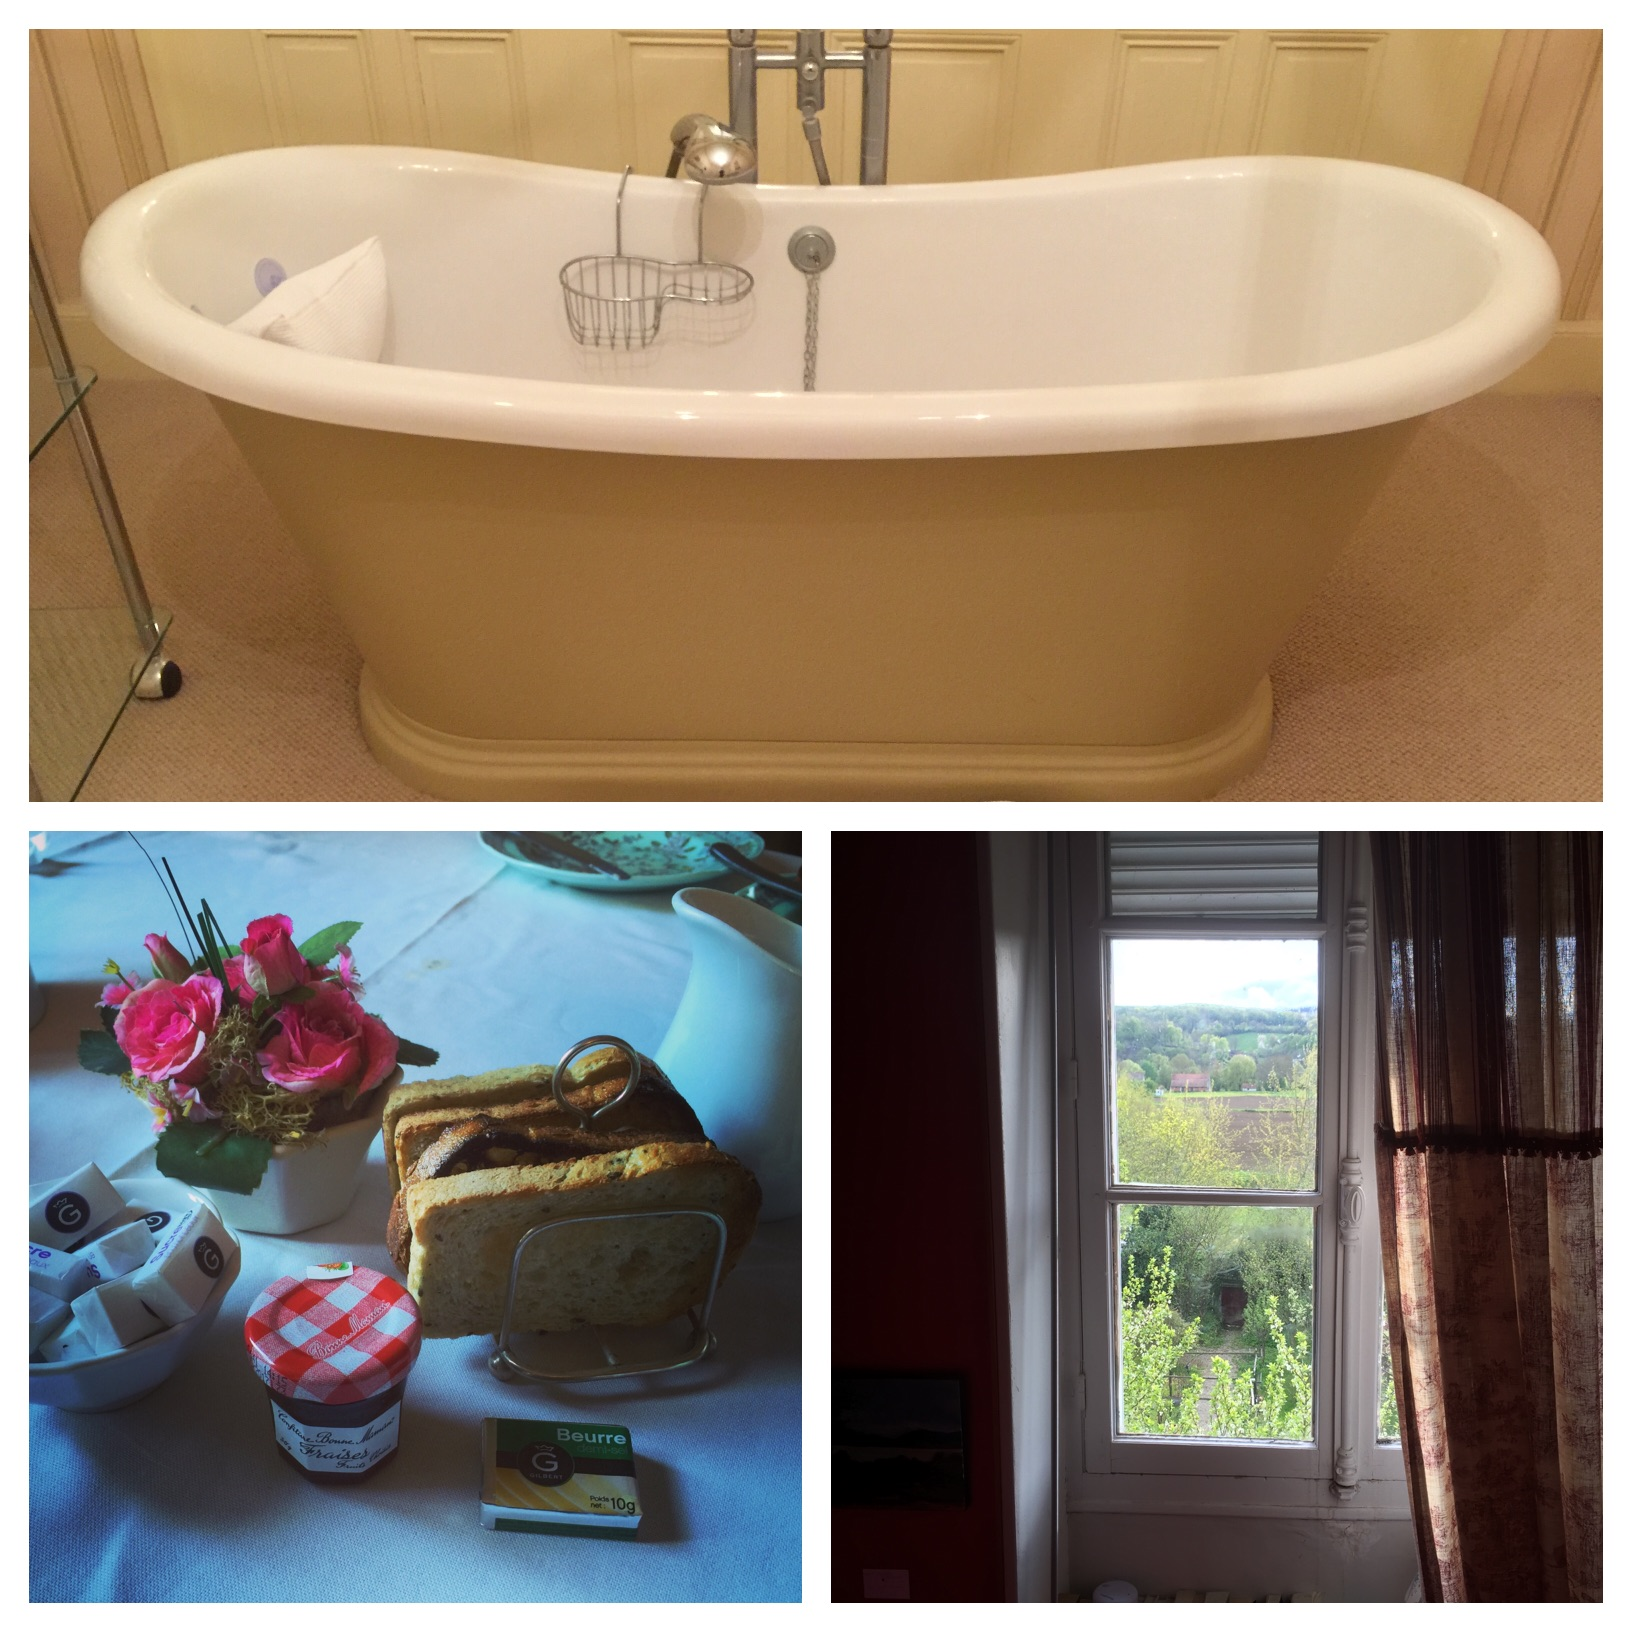 Top: Notice the pillow in the bathtub, the toast stacked neatly in it's own rack and the view out the window of the French countryside.